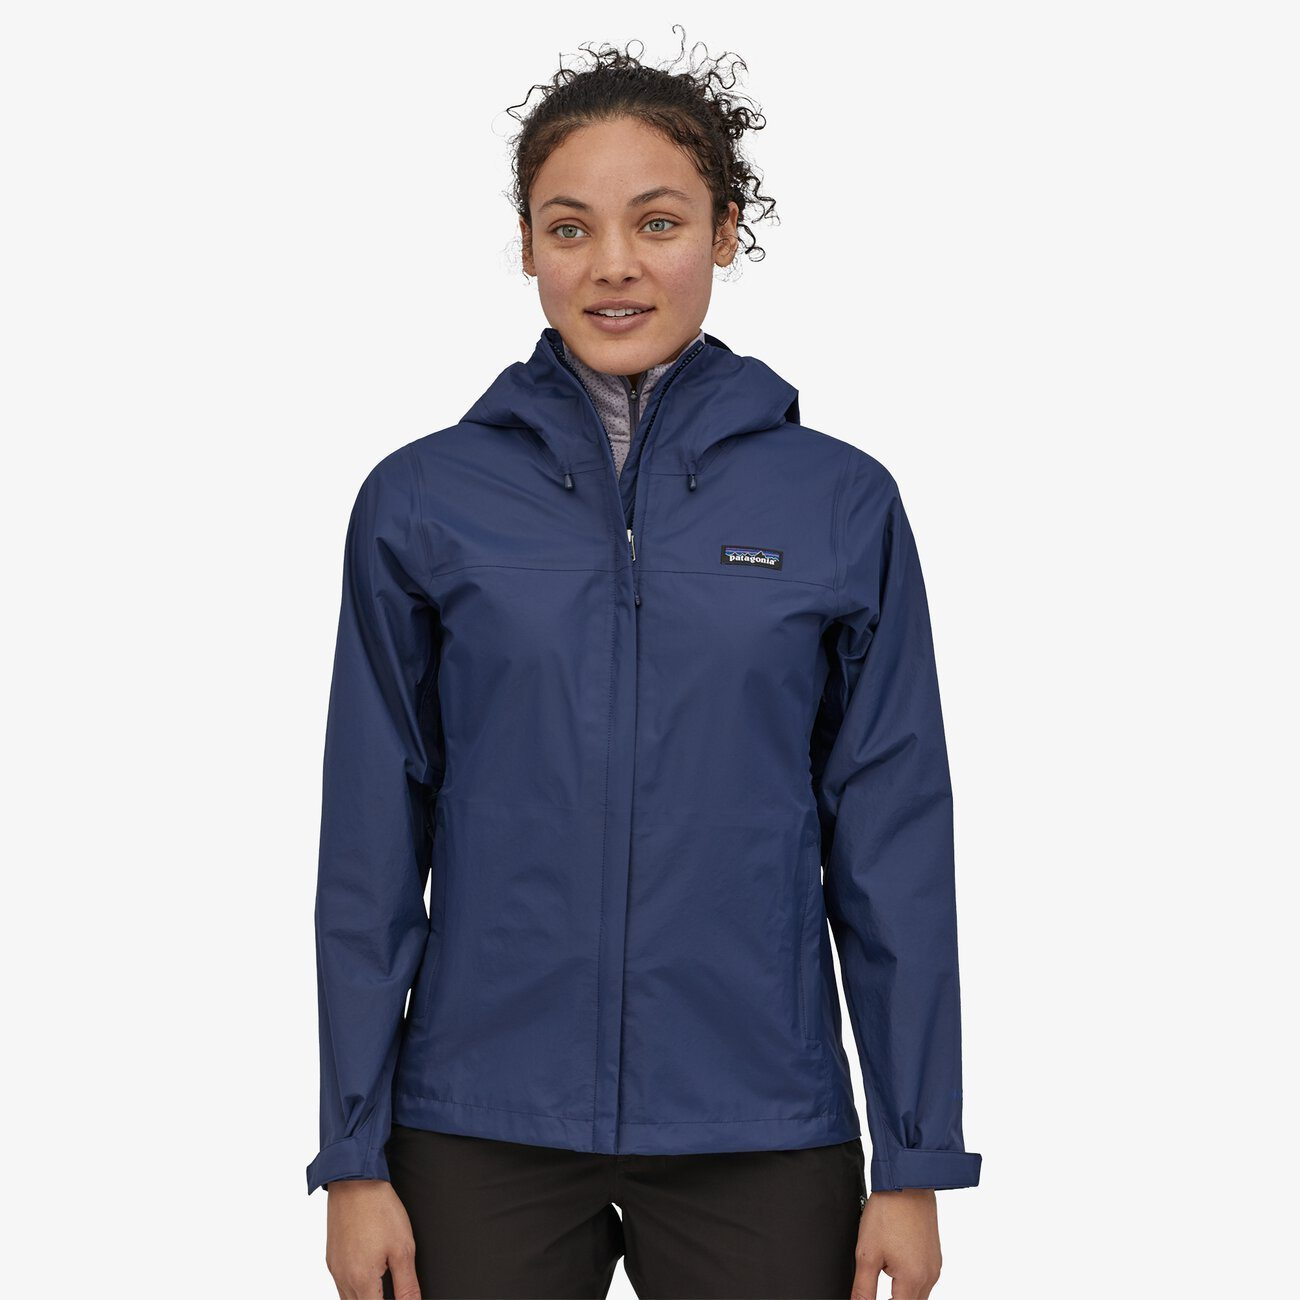 Patagonia - W's Torrentshell 3L Jacket - 100% Recycled Nylon - Weekendbee - sustainable sportswear